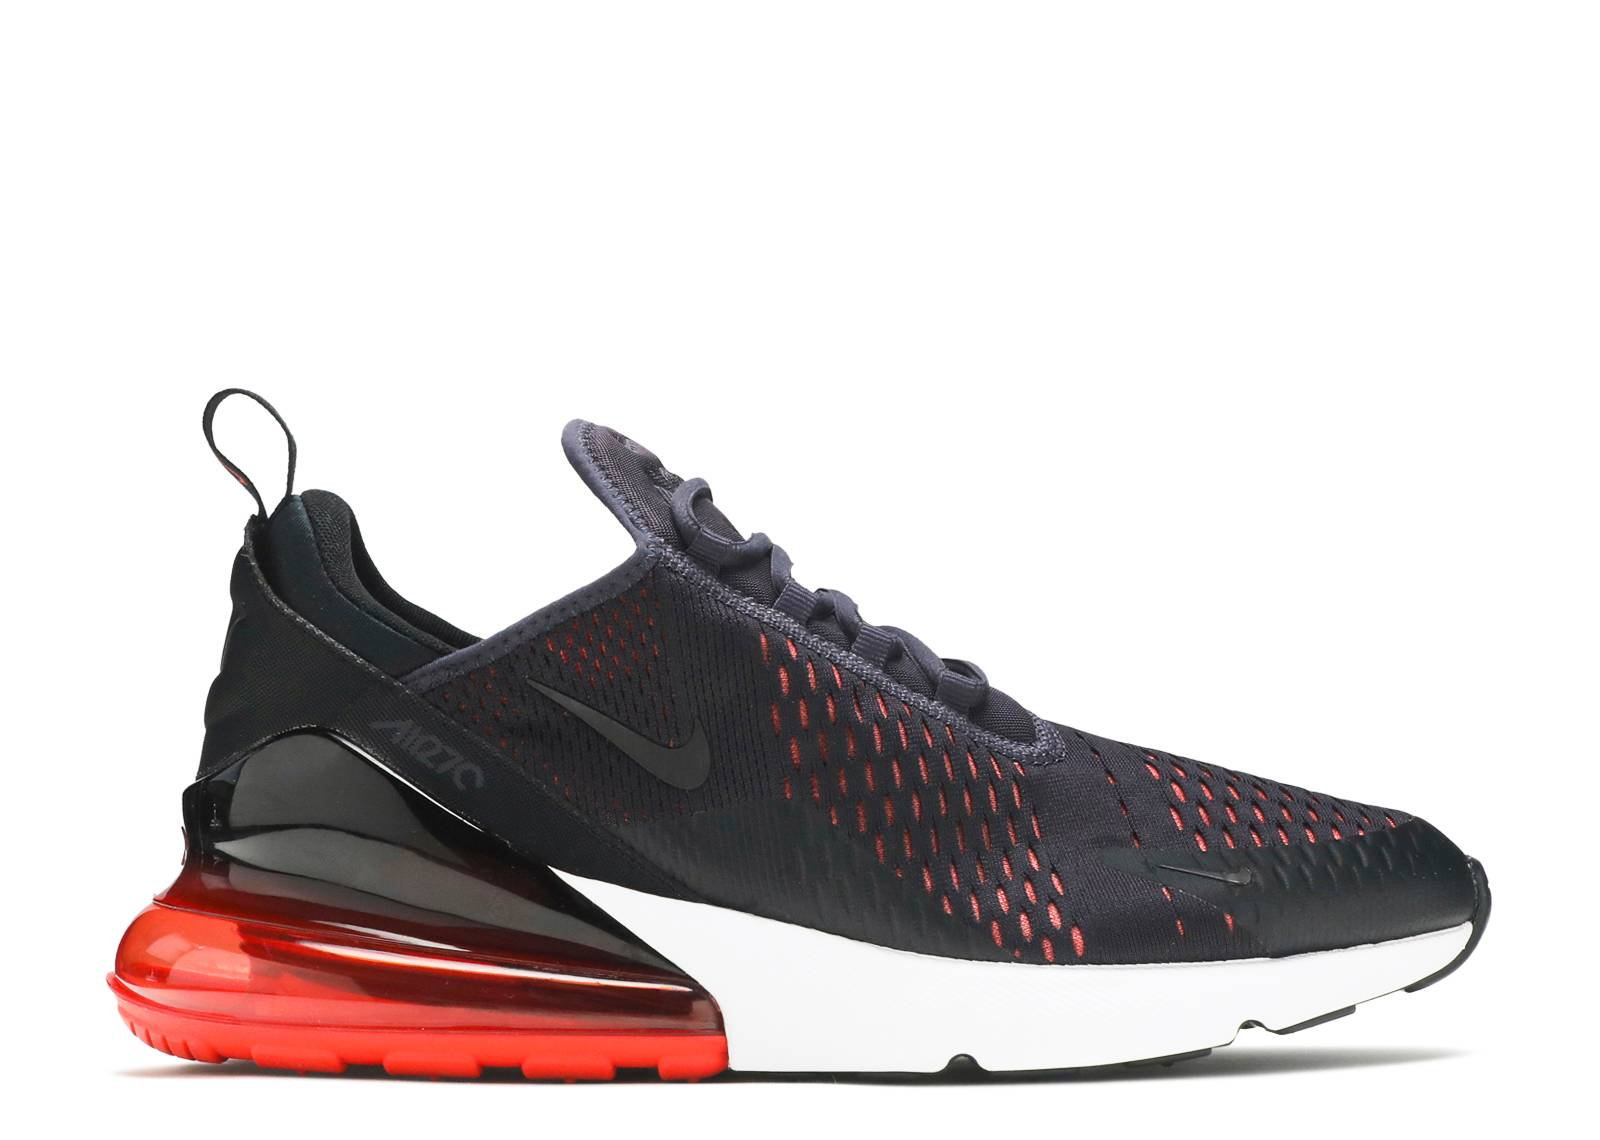 ebdb4022790ecb Air Max 270 - Nike - ah8050 013 - oil grey oil grey-habanero red ...